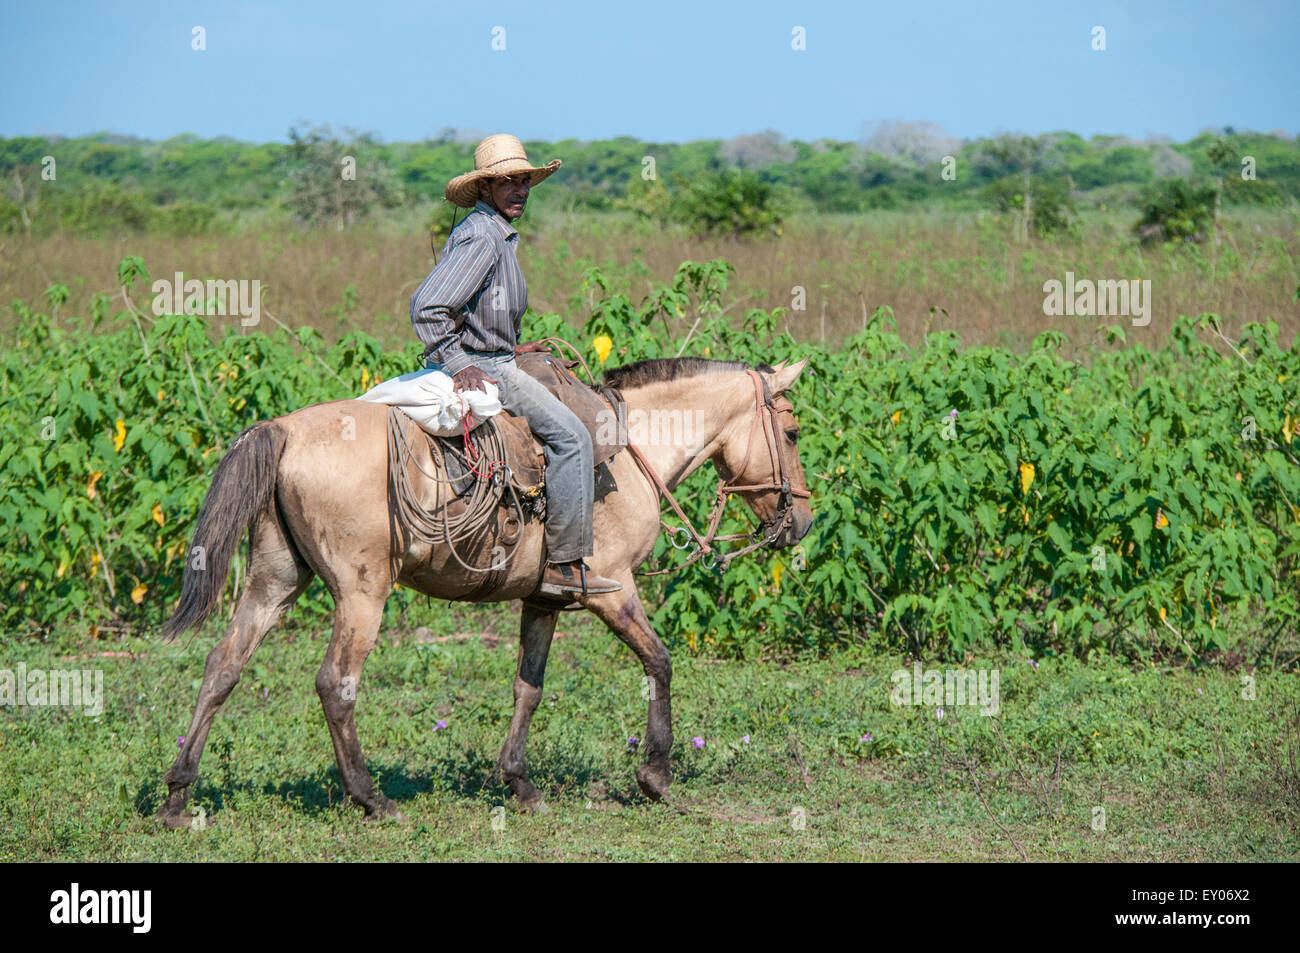 Brazilian Cowboy riding a Pantaneiro horse on a cattle ranch in the Pantanal, Mato Grosso, Brazil, South America - Stock Image